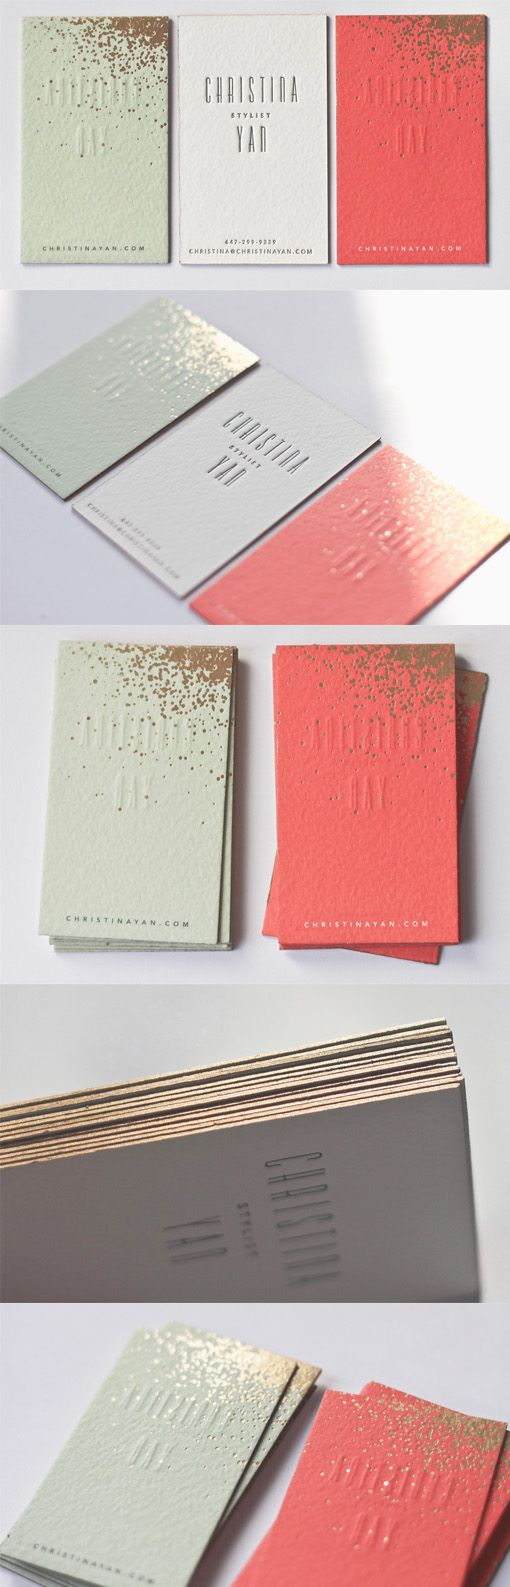 340 best creative business cards images on pinterest business simple modern minimalist letterpress business card with gold design inspiration reheart Choice Image